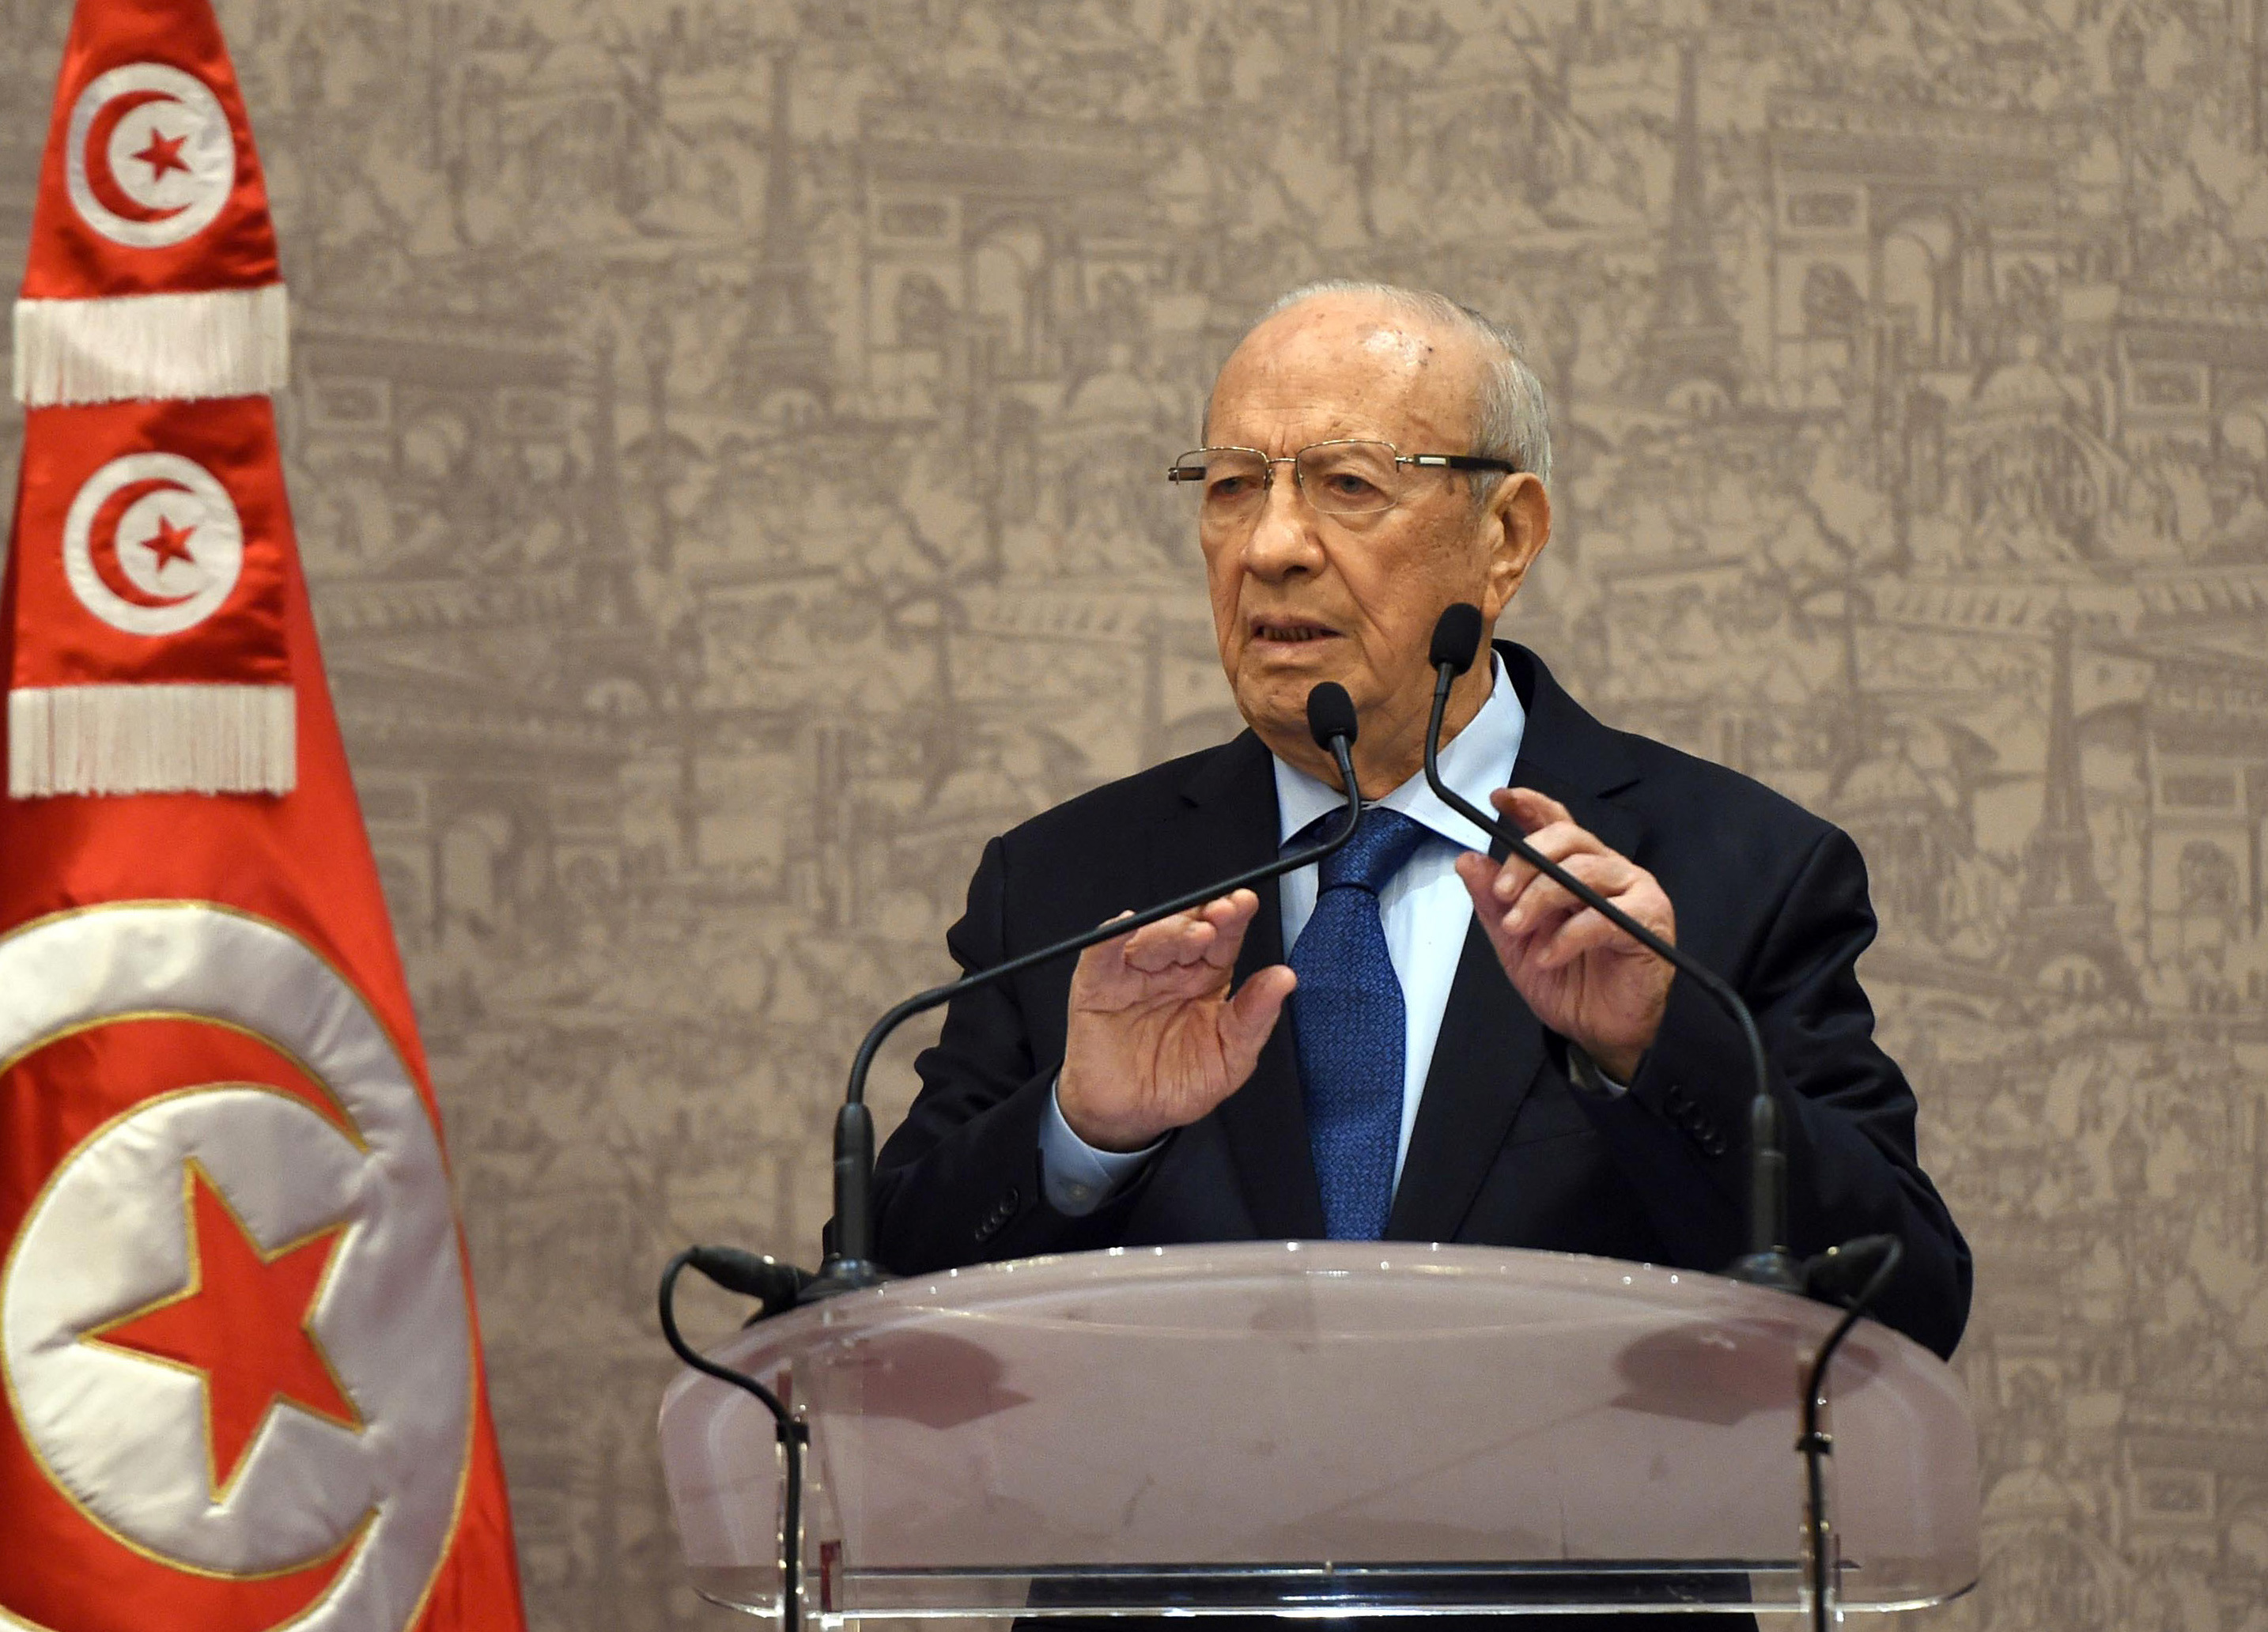 Newly elected Tunisian President Beji Caid Essebsi gives a press conference in Tunis, (AP Photo/Str)